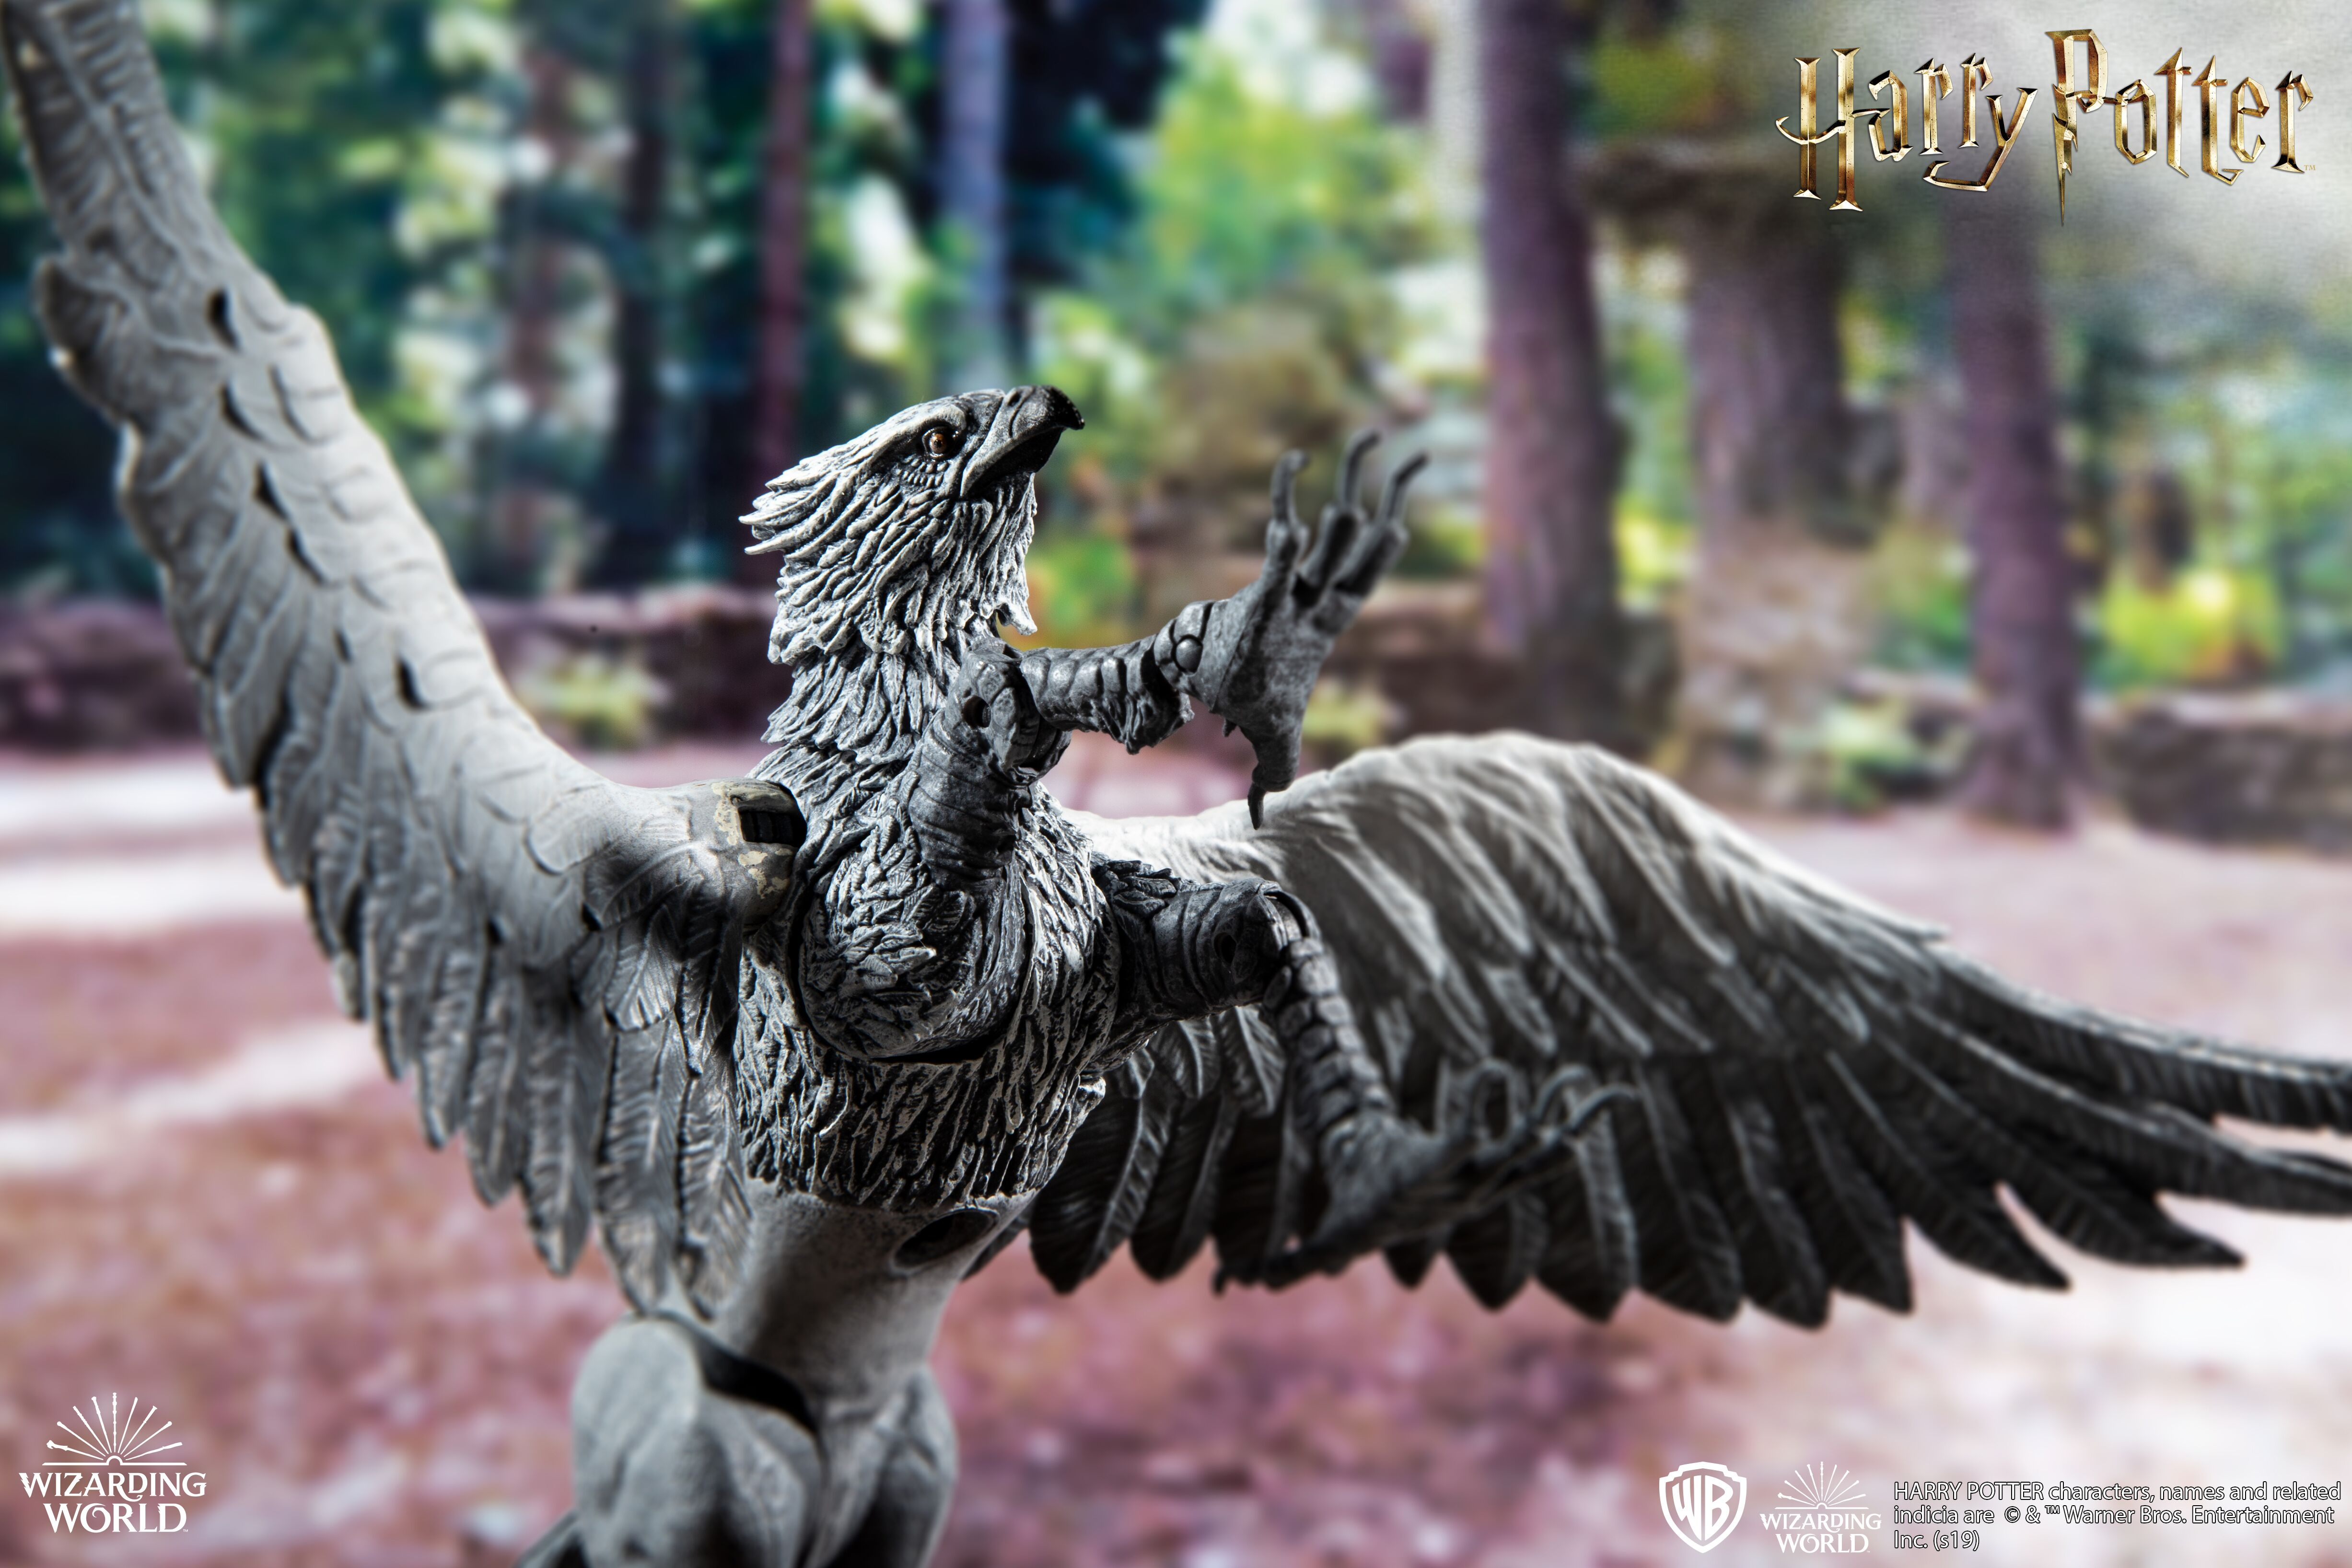 This beautiful and lifelike figure of Buckbeak is new in McFarlane Toys' creature line.